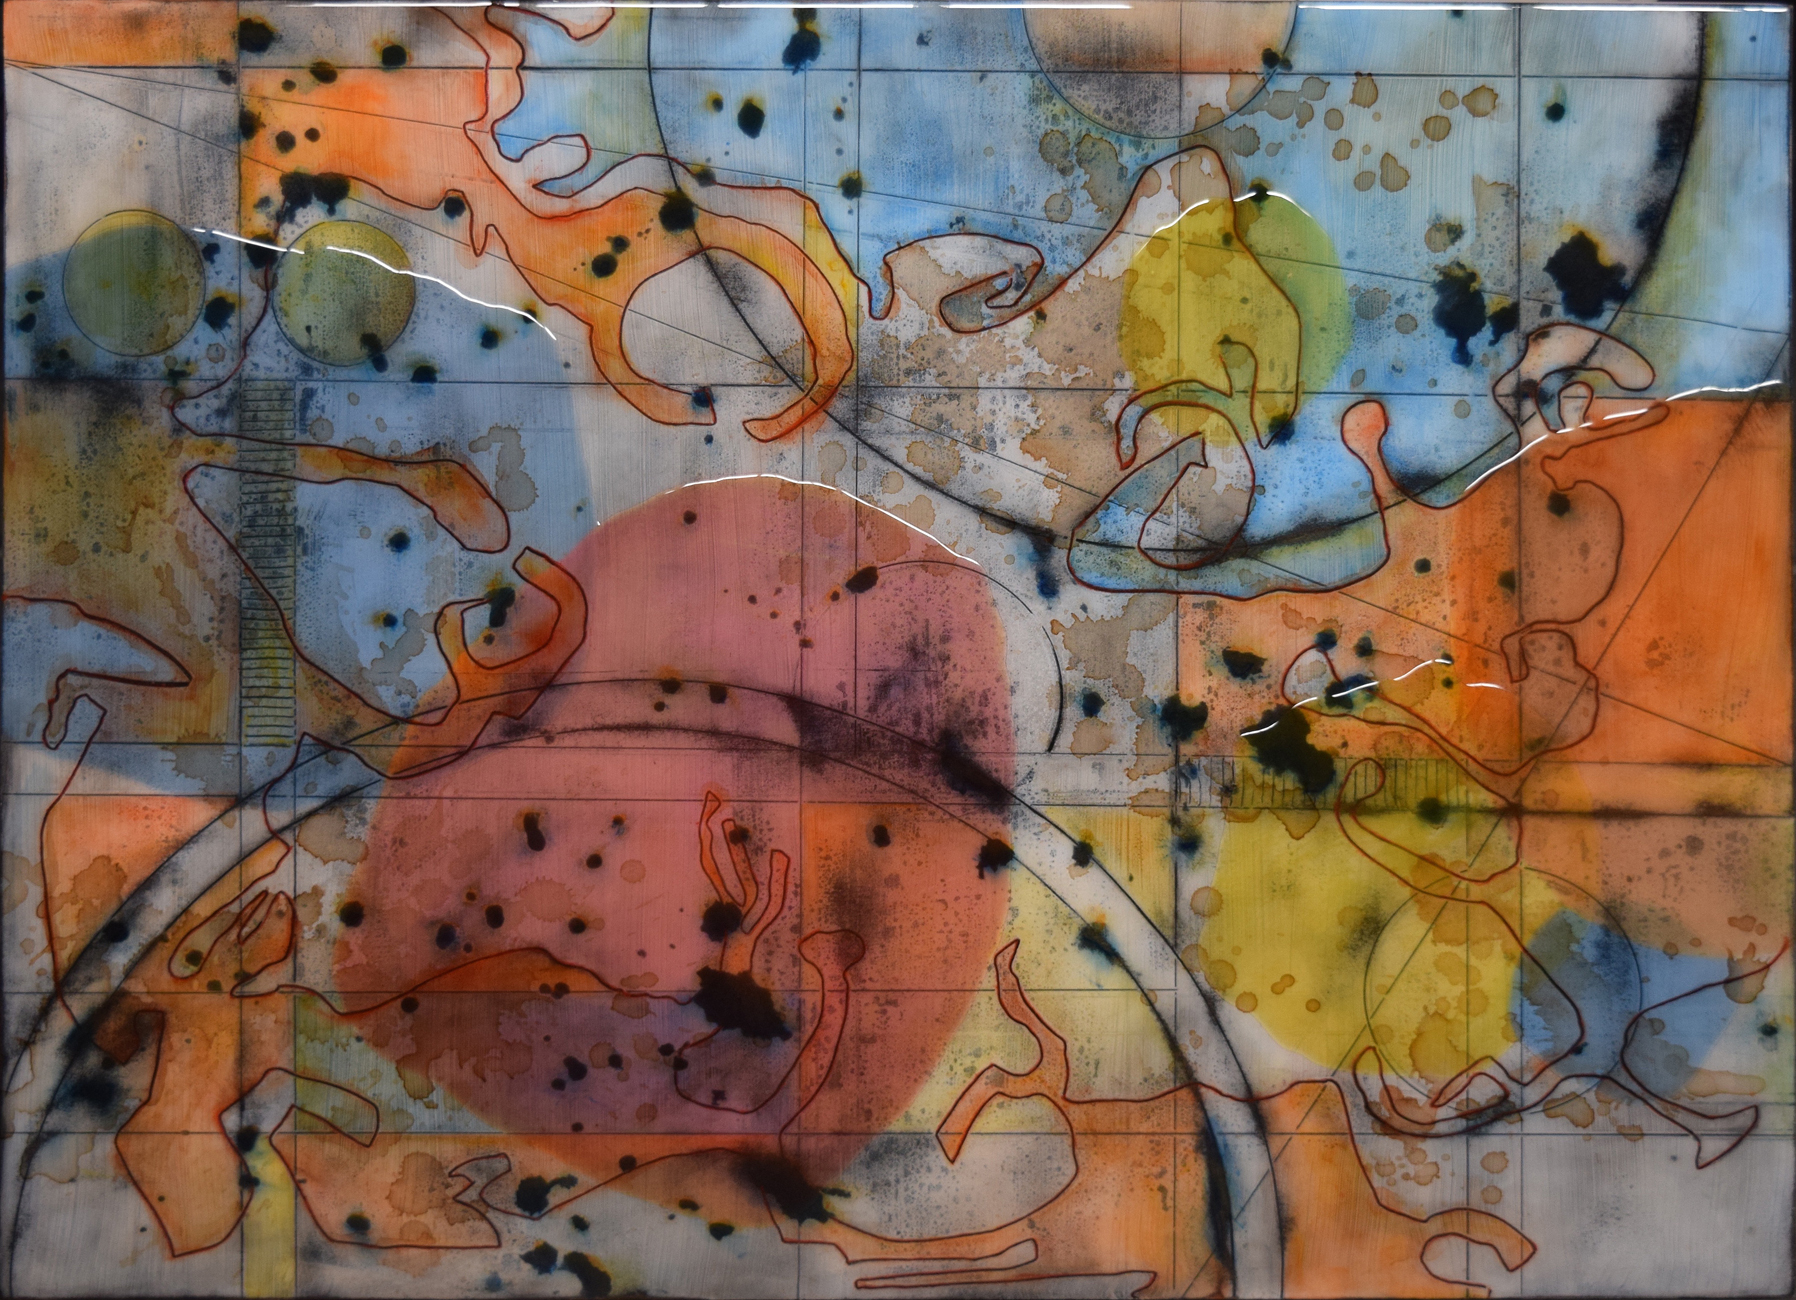 Cartogram 5 by Ken Sloan. (Abstract Epoxy Resin Painting)